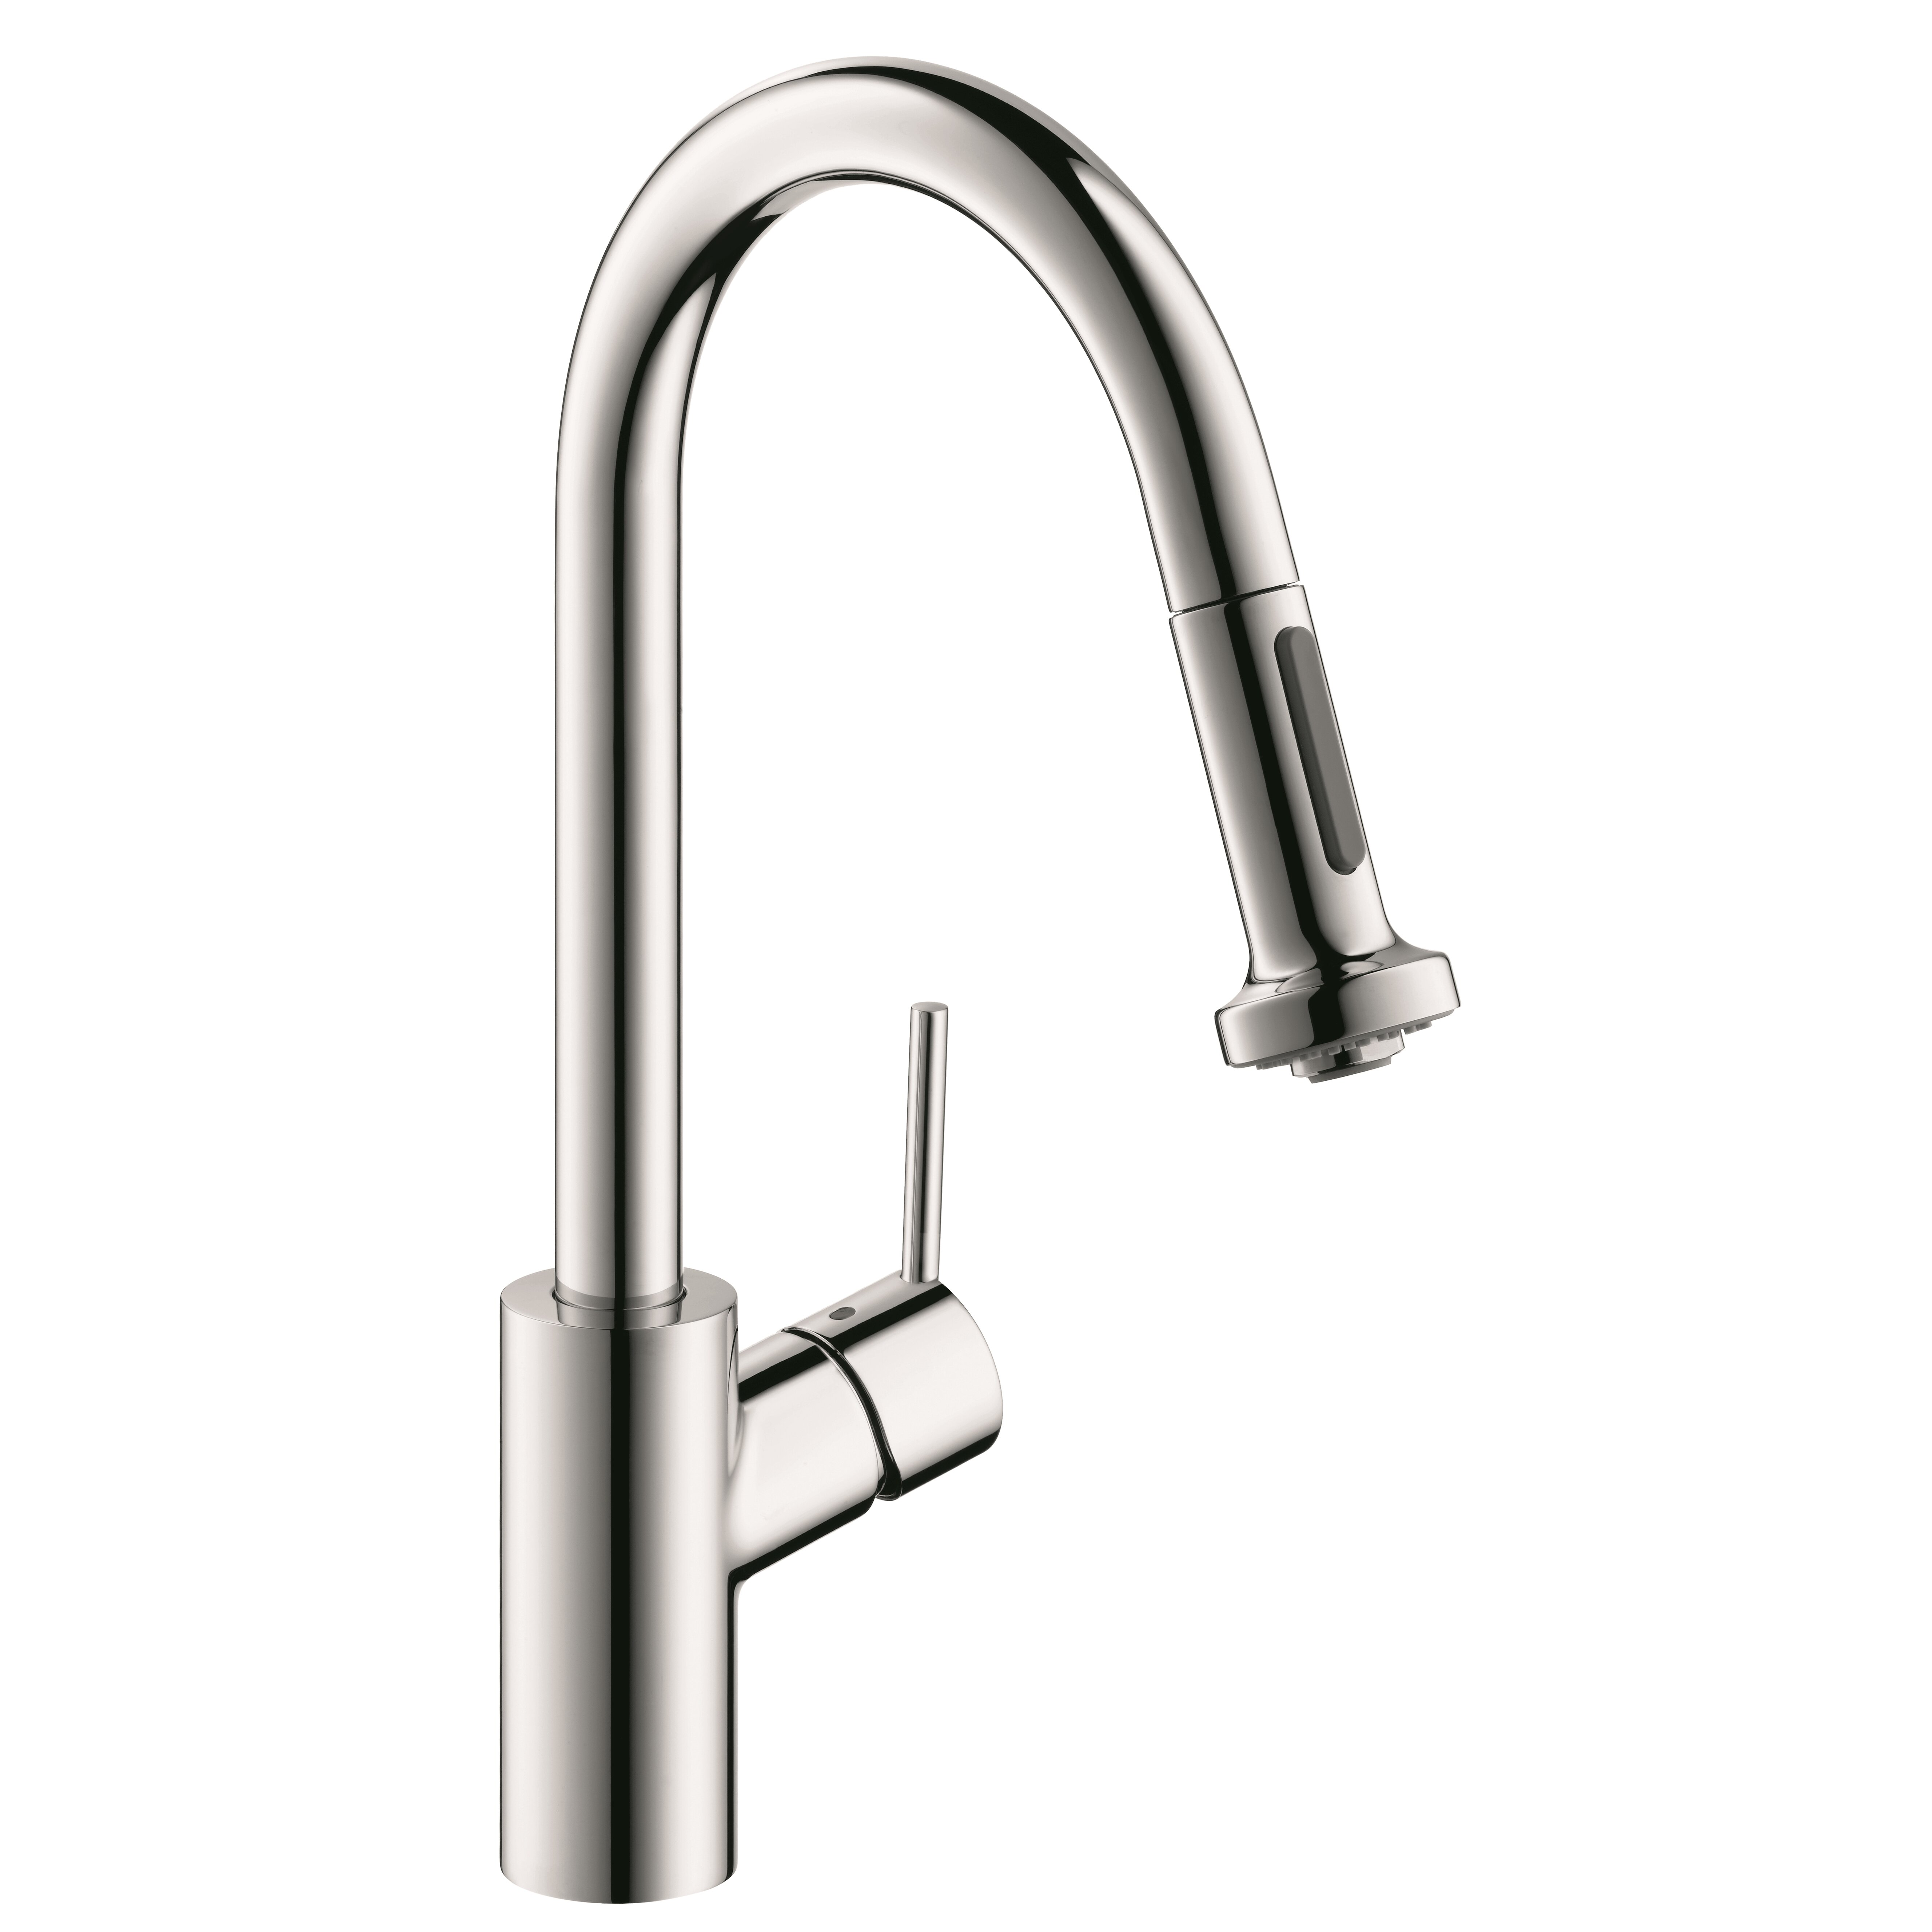 Deck Mount Kitchen Faucet Hansgrohe Talis S 2 Prep One Handle Deck Mounted Kitchen Faucet